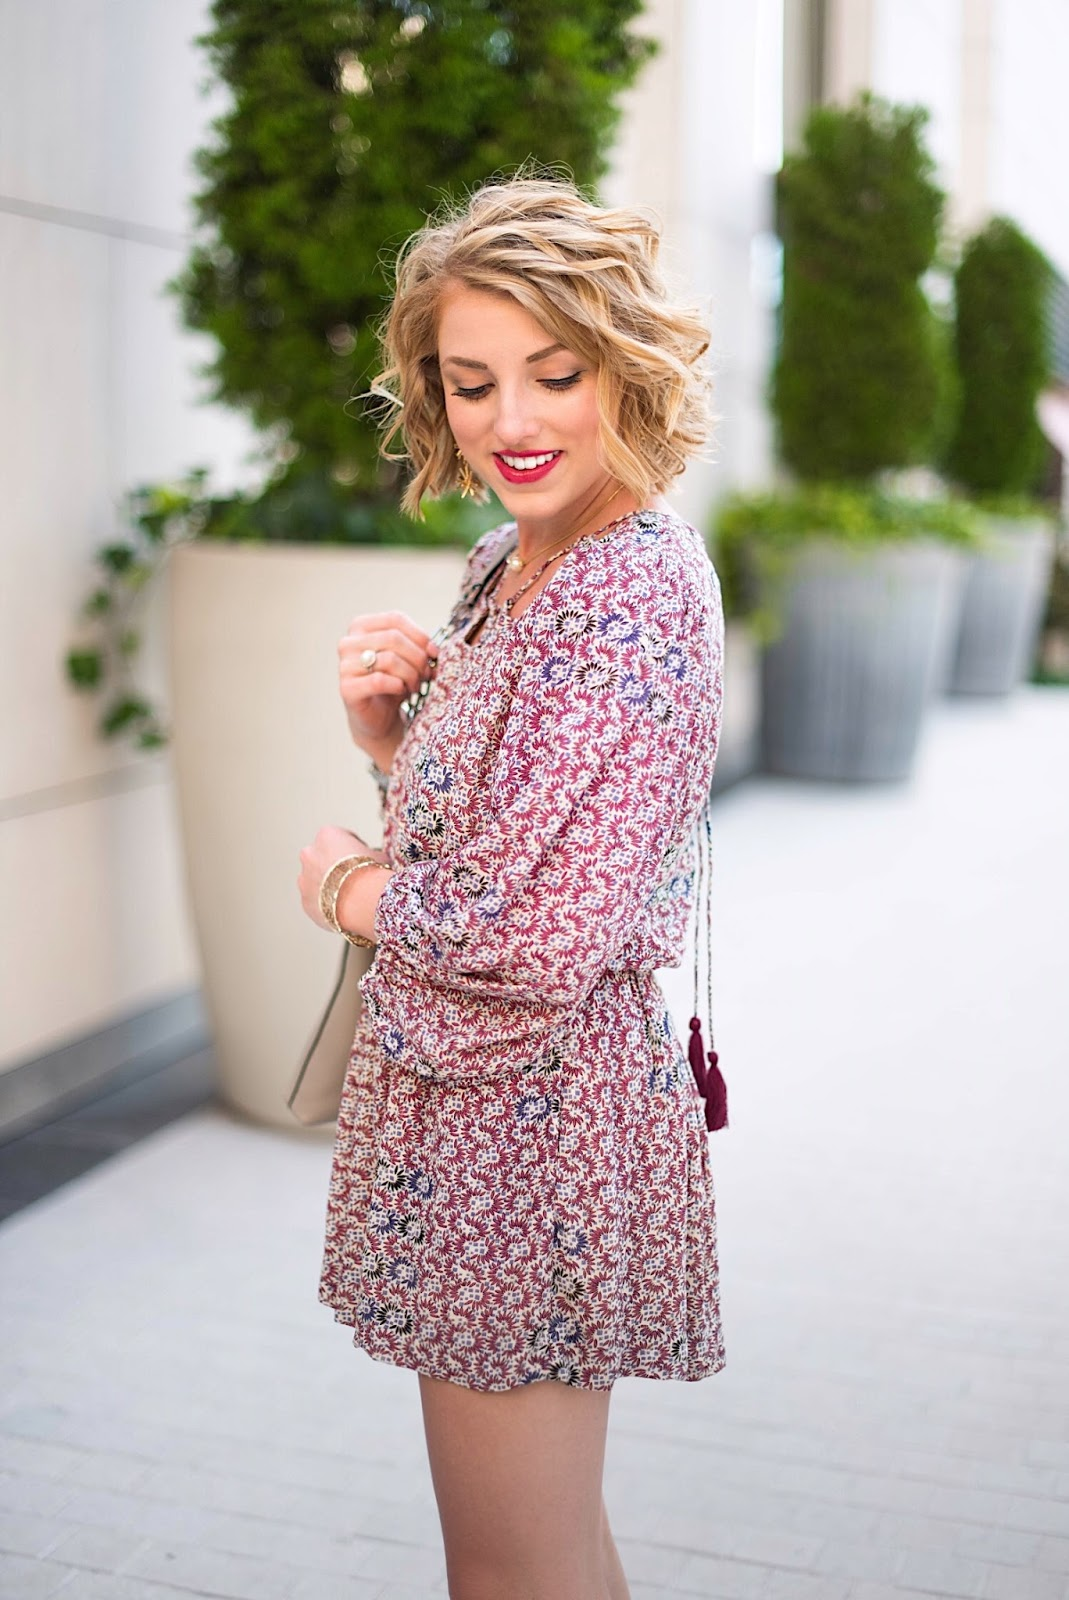 Transition Outfit - Click through to see more on Something Delightful!